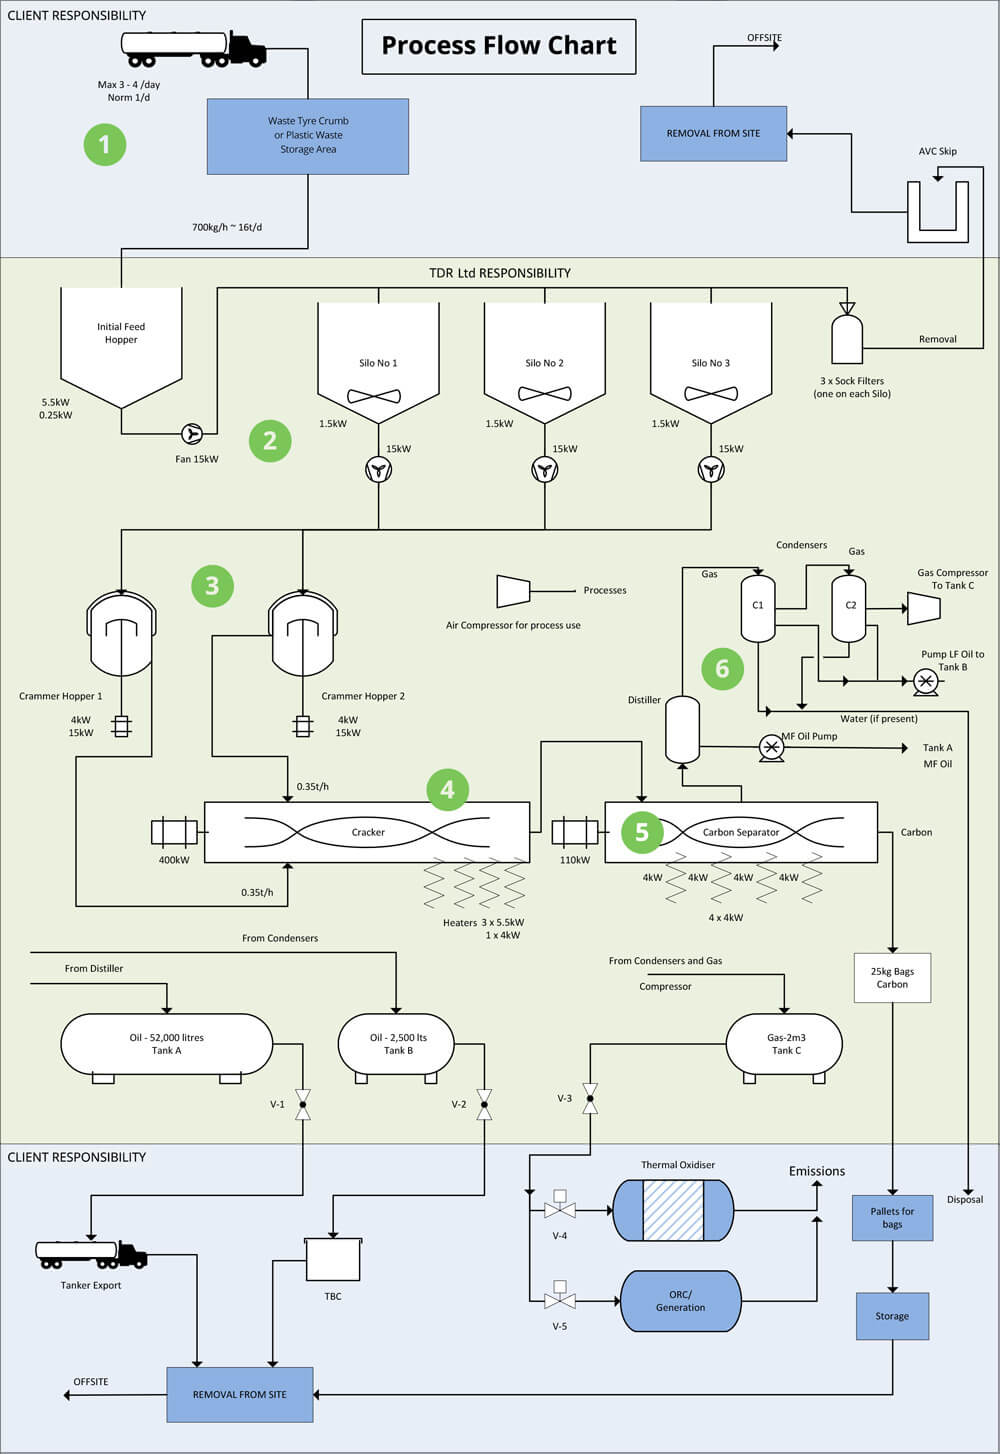 Thermodynamic Reprocessing Process Flow Chart